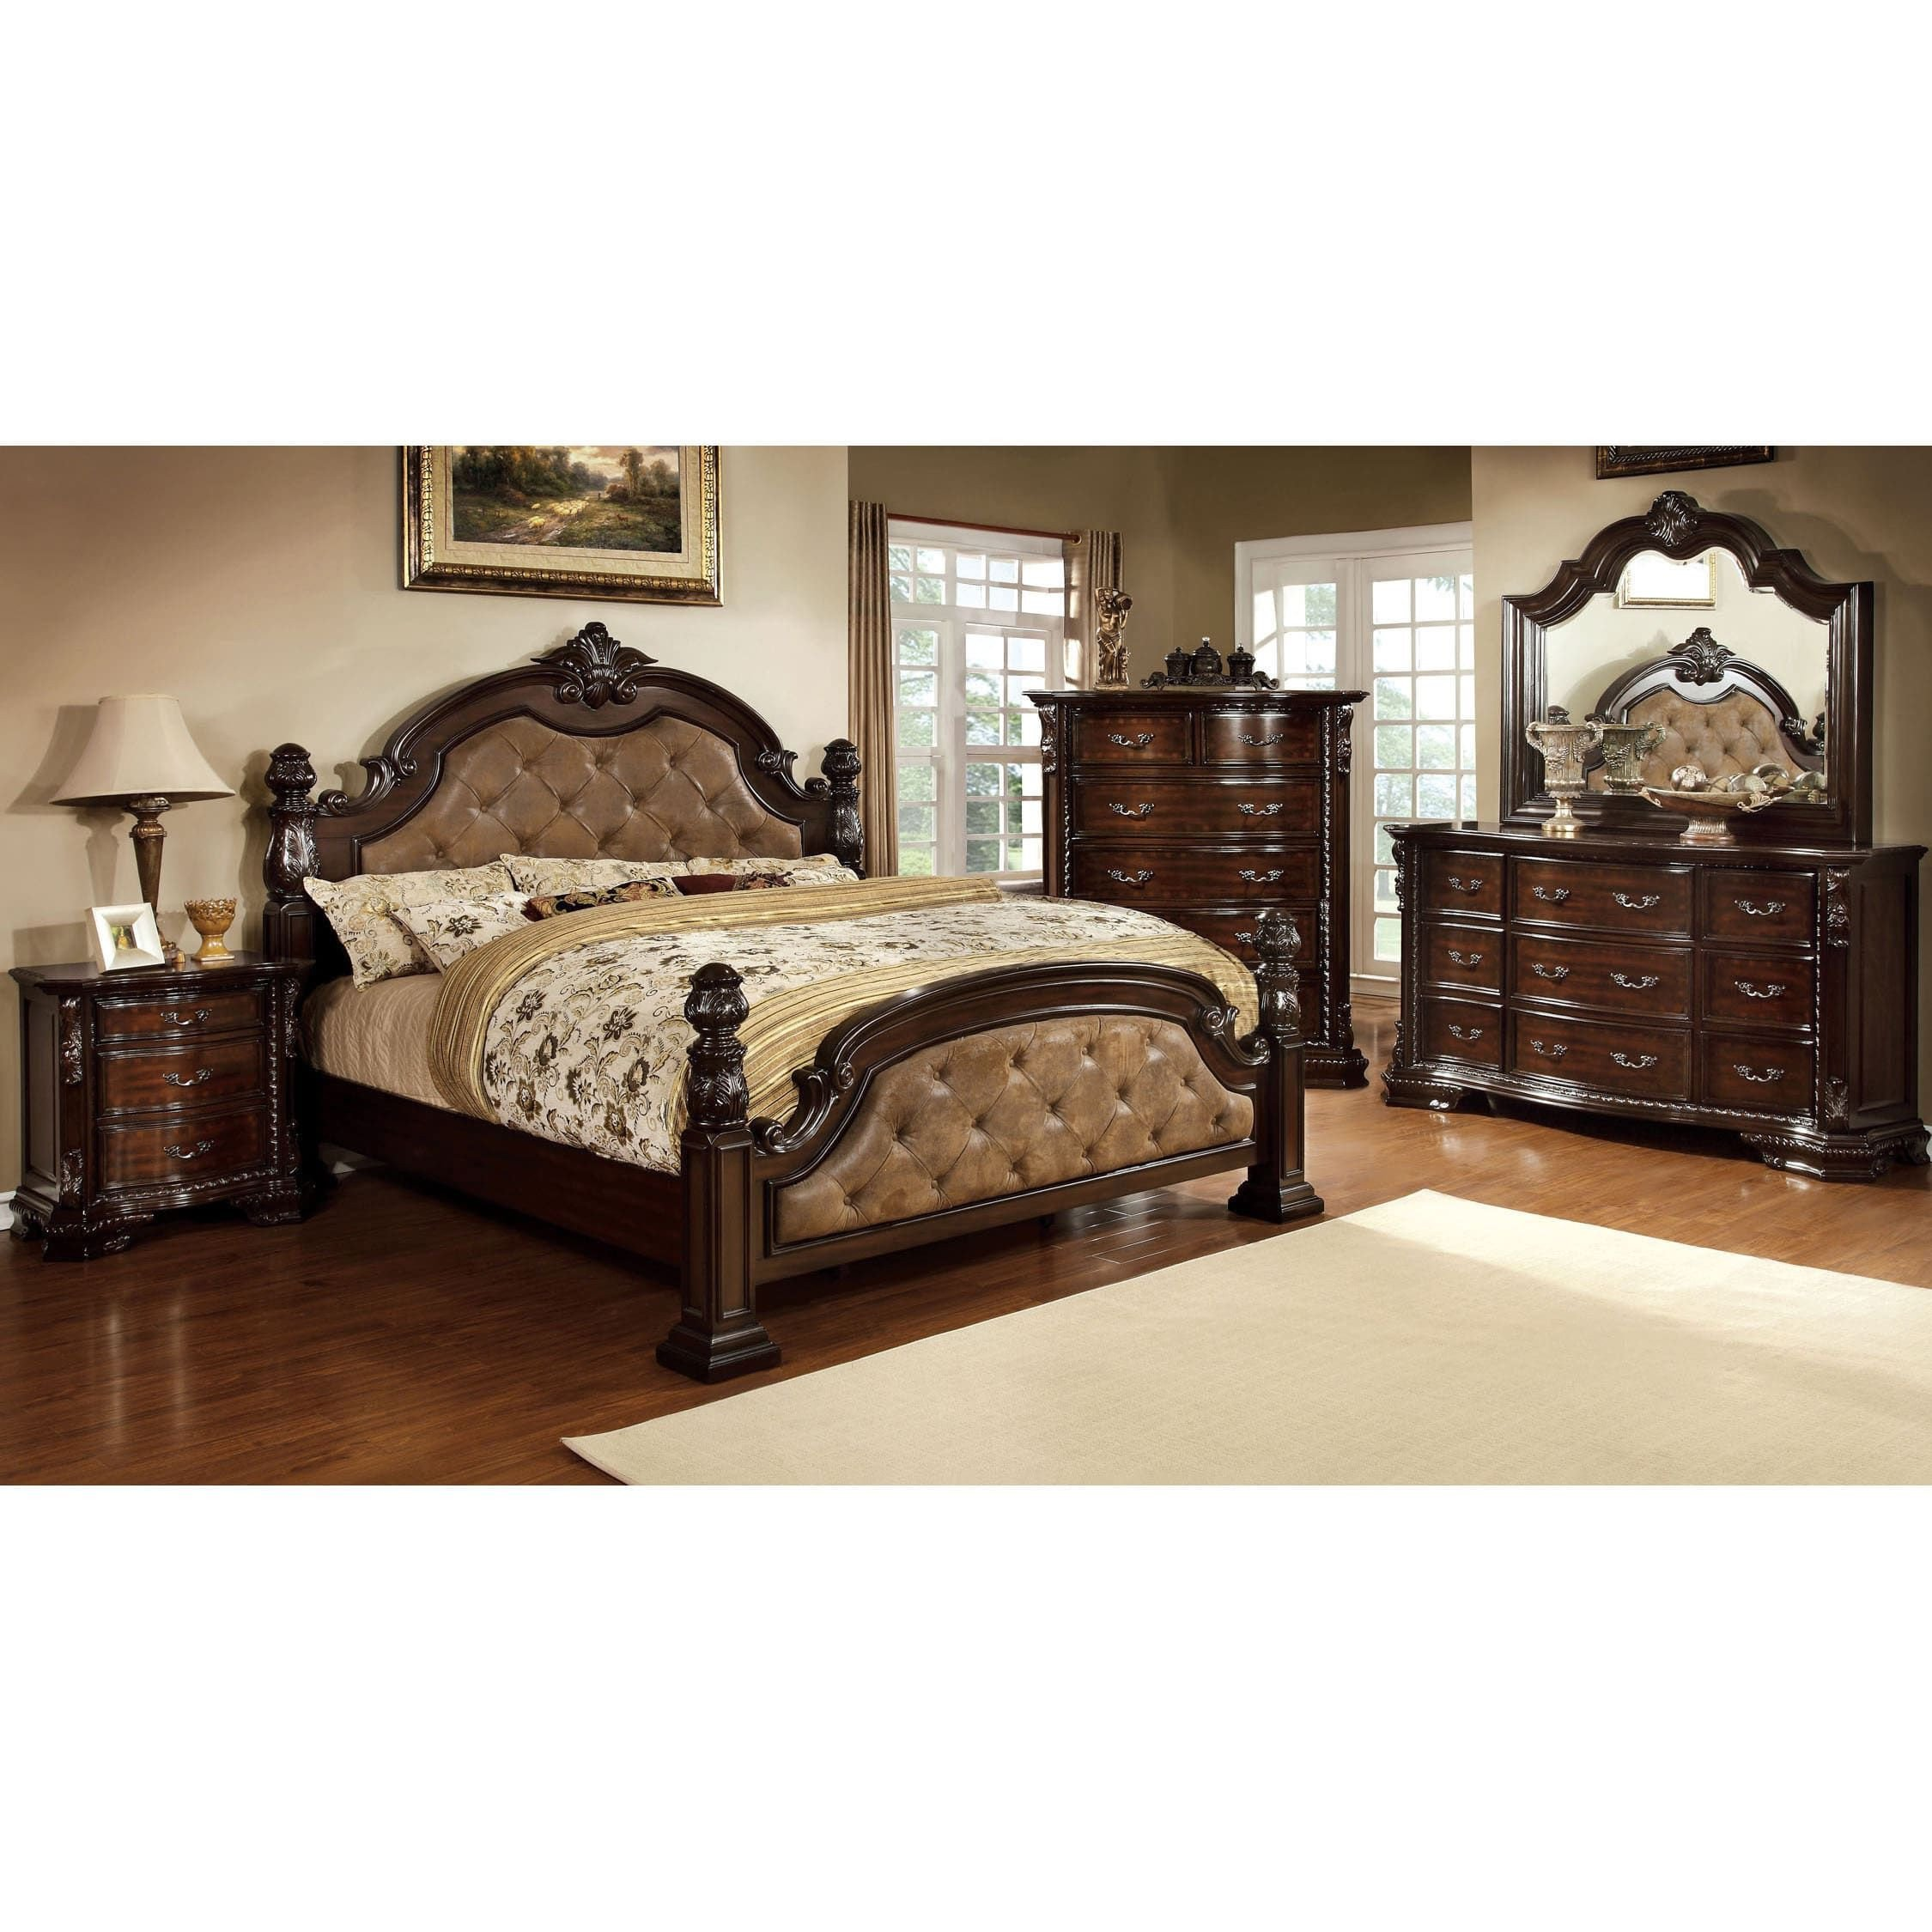 Full Size Bedroom Set New Kassania Traditional 4 Piece Bedroom Set by Foa California